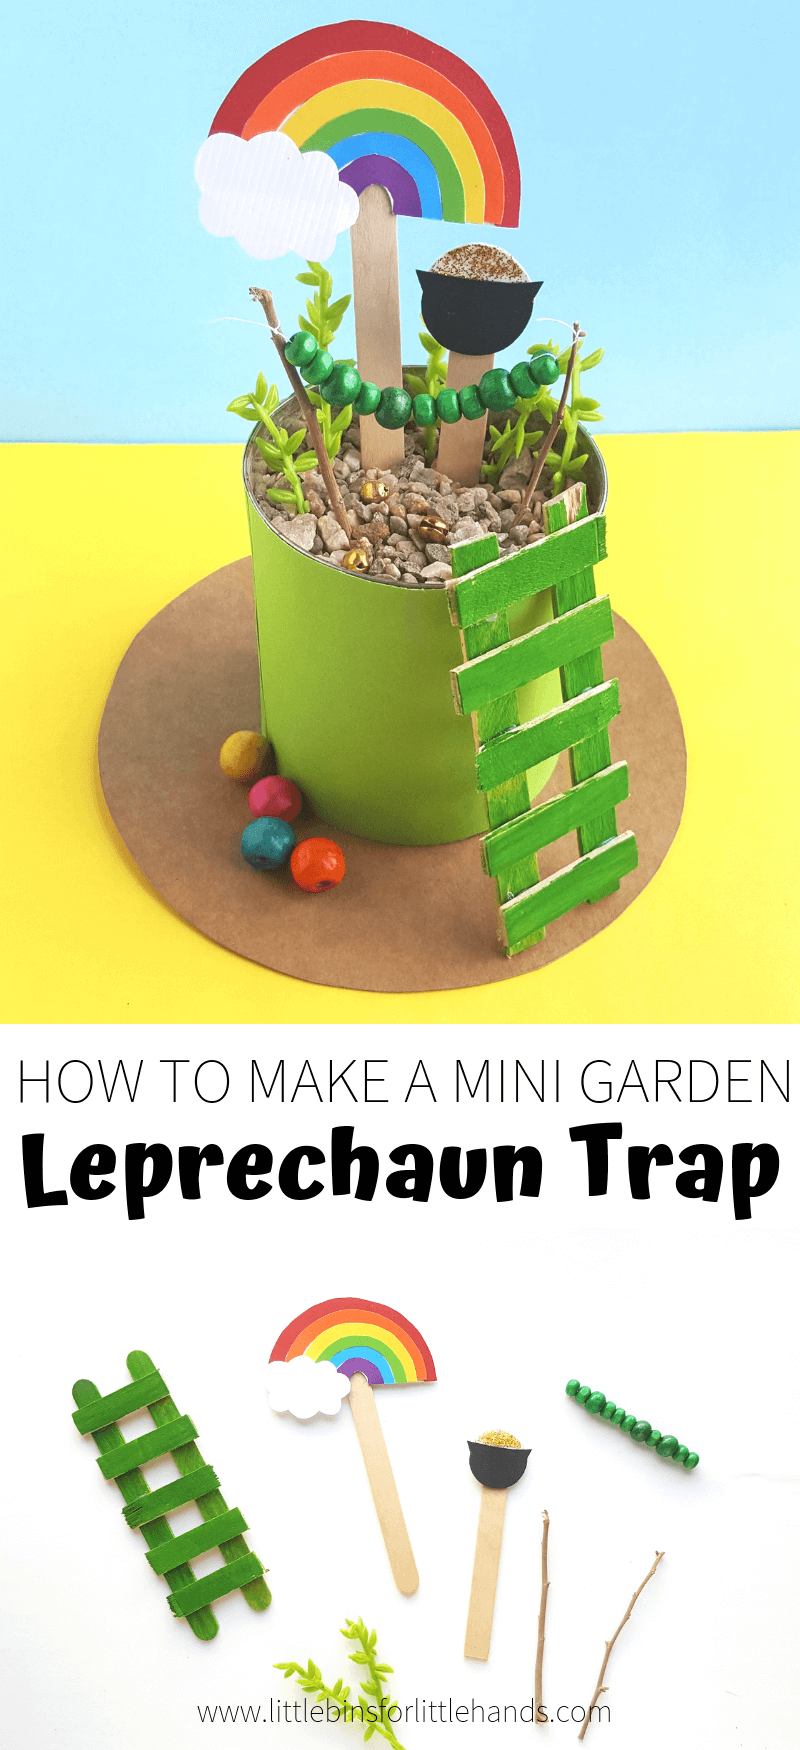 Learn how to make a leprechaun trap garden for St Patricks Day Science Challenges